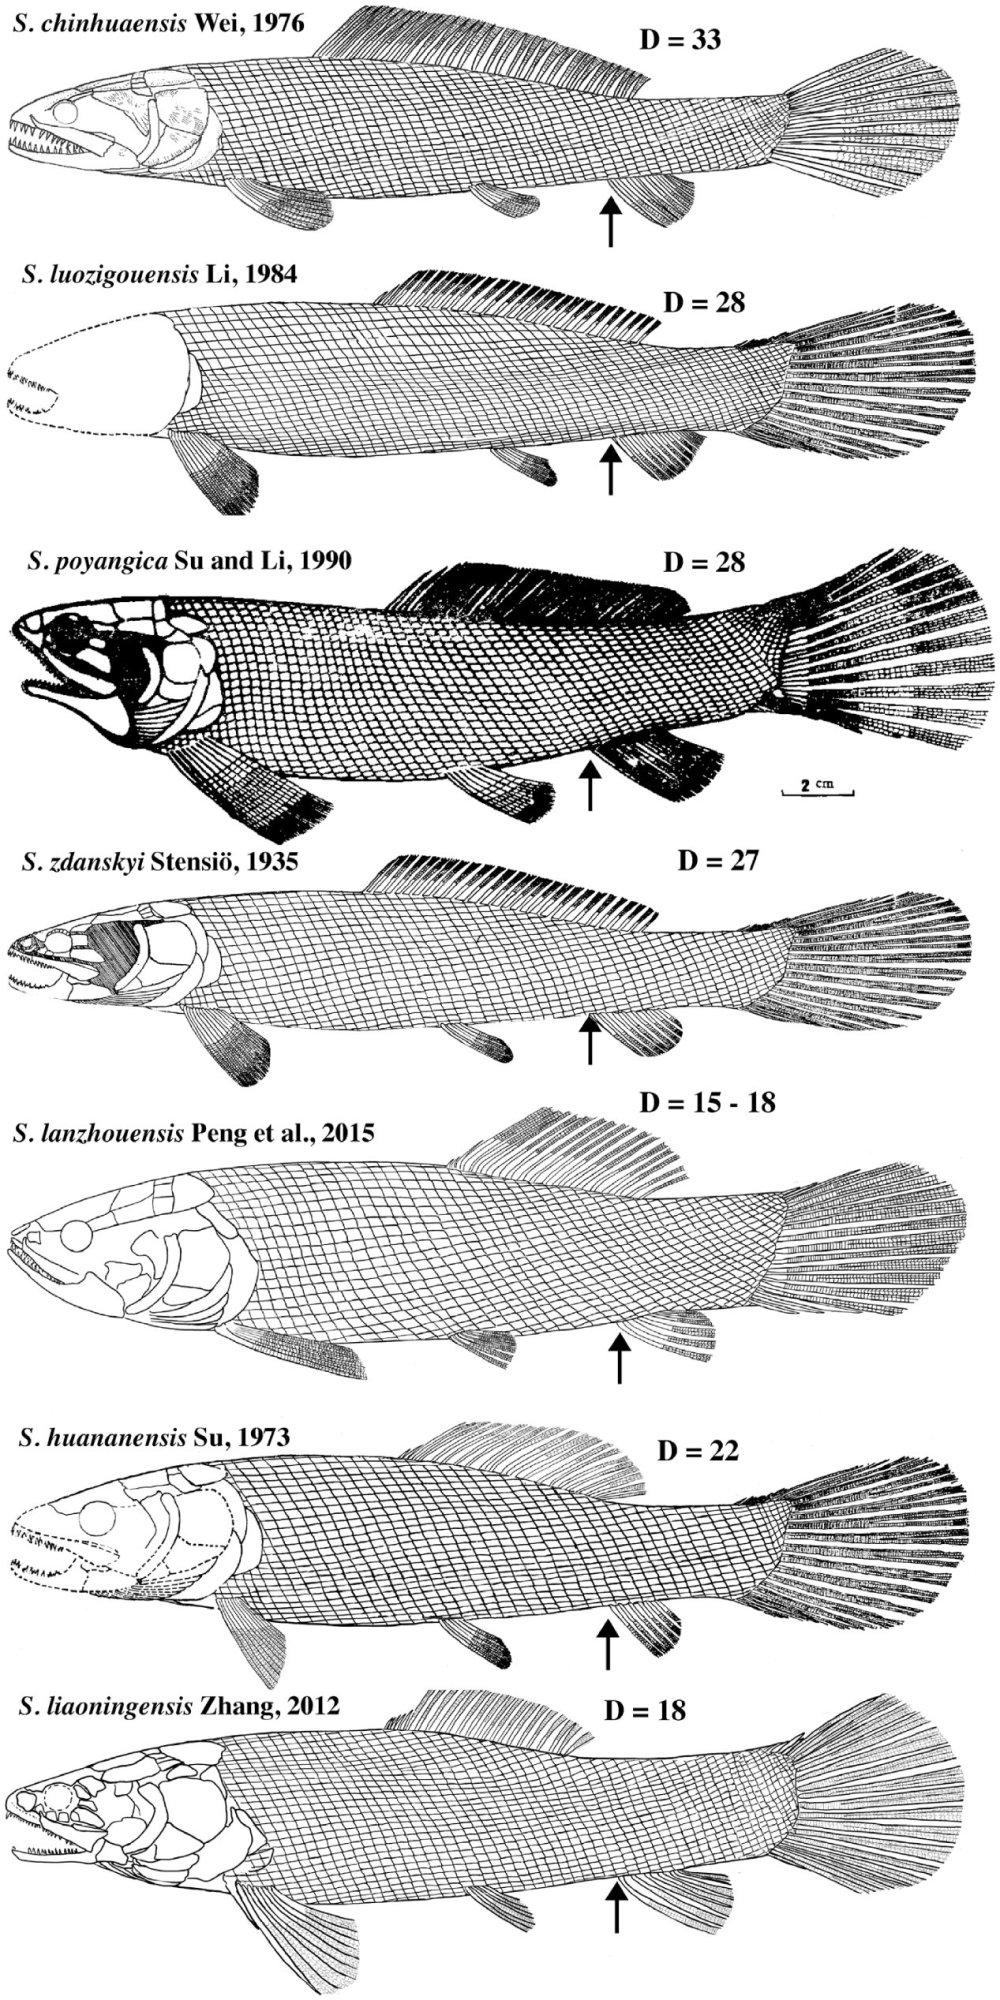 medium resolution of arrows show the position of the origin of the anal fin d number of dorsal fin rays restoration of s poyangica from su and li 1990 and s zdanskyi